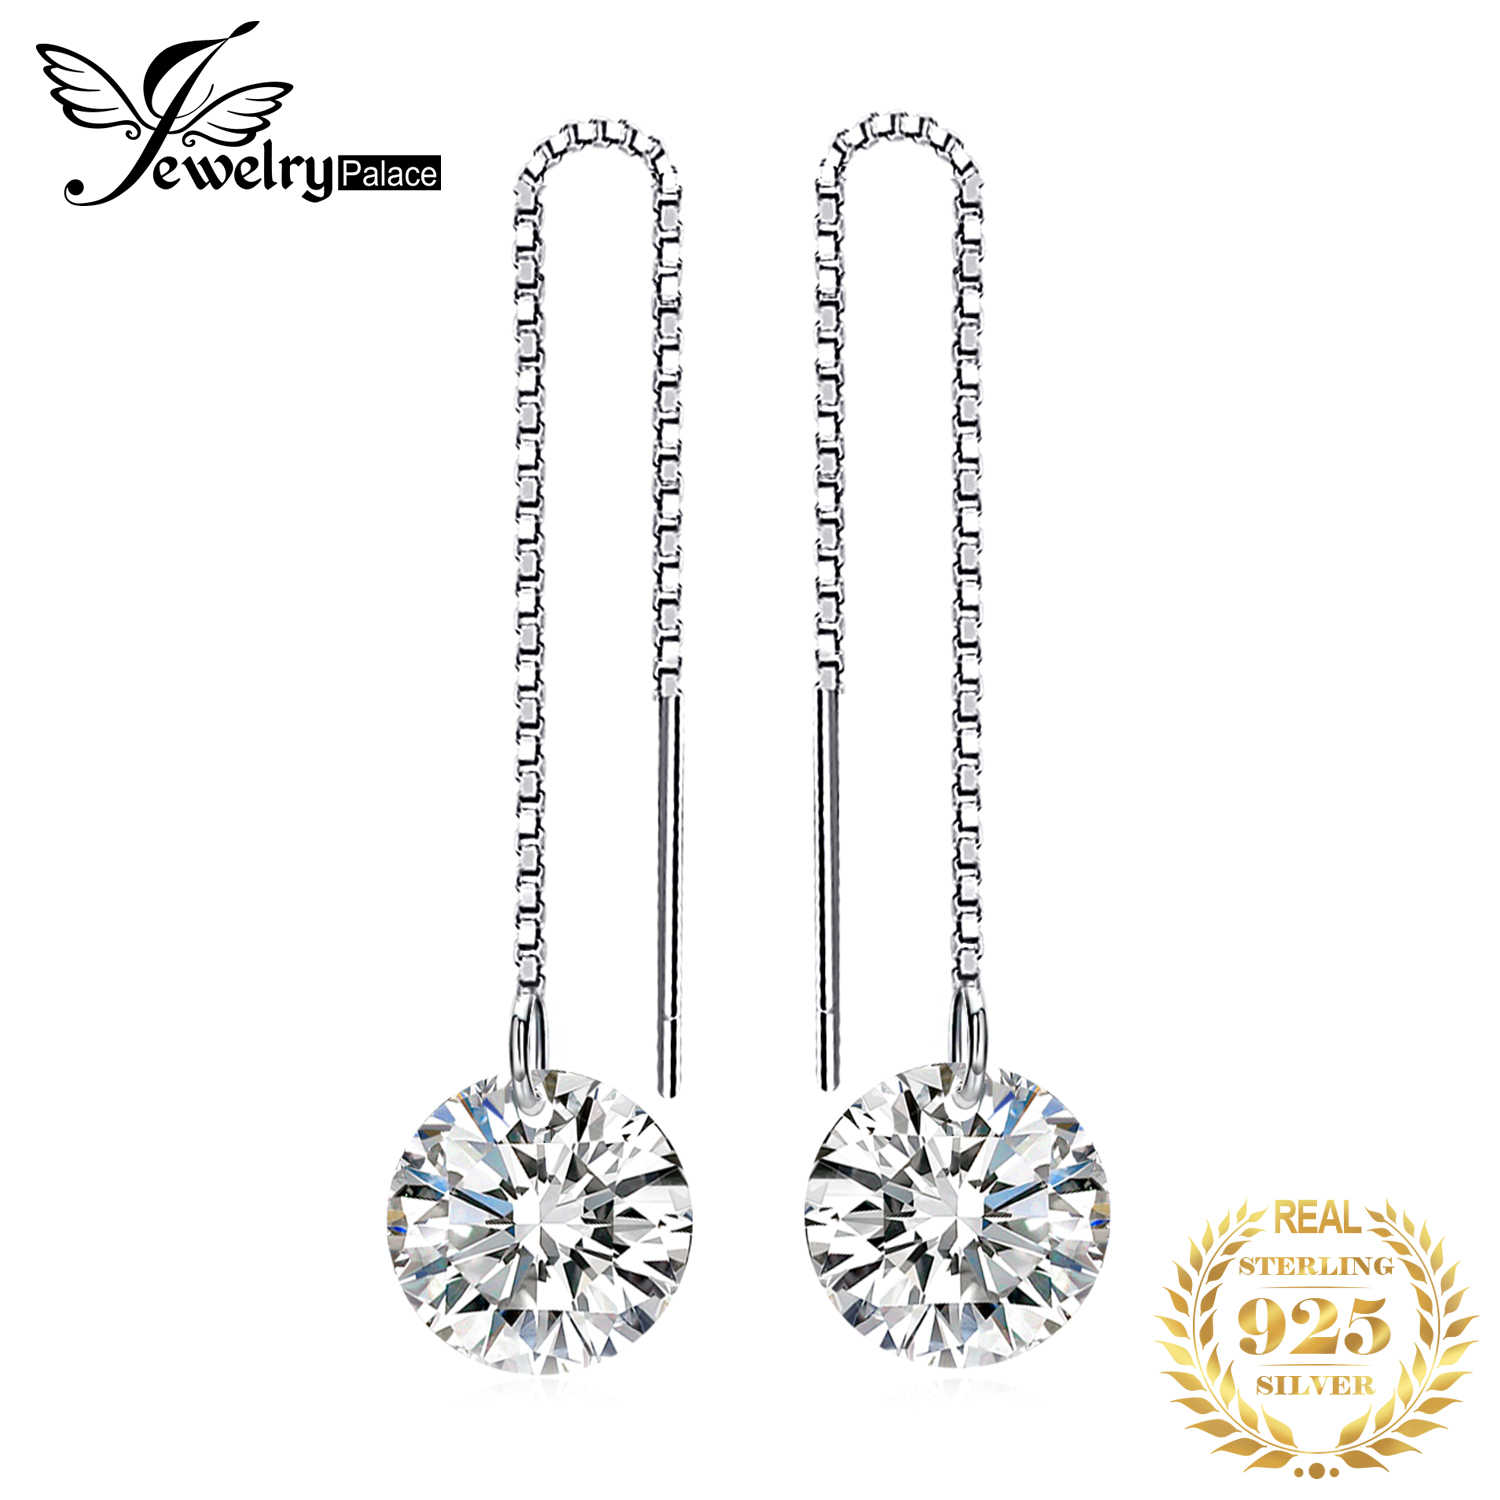 JewelryPalace 5.2ct  Round Cut Earrings Real 925 Sterling Silver Fashion Long Earrings Nice Engagement Gift For Girl/Women/Wife